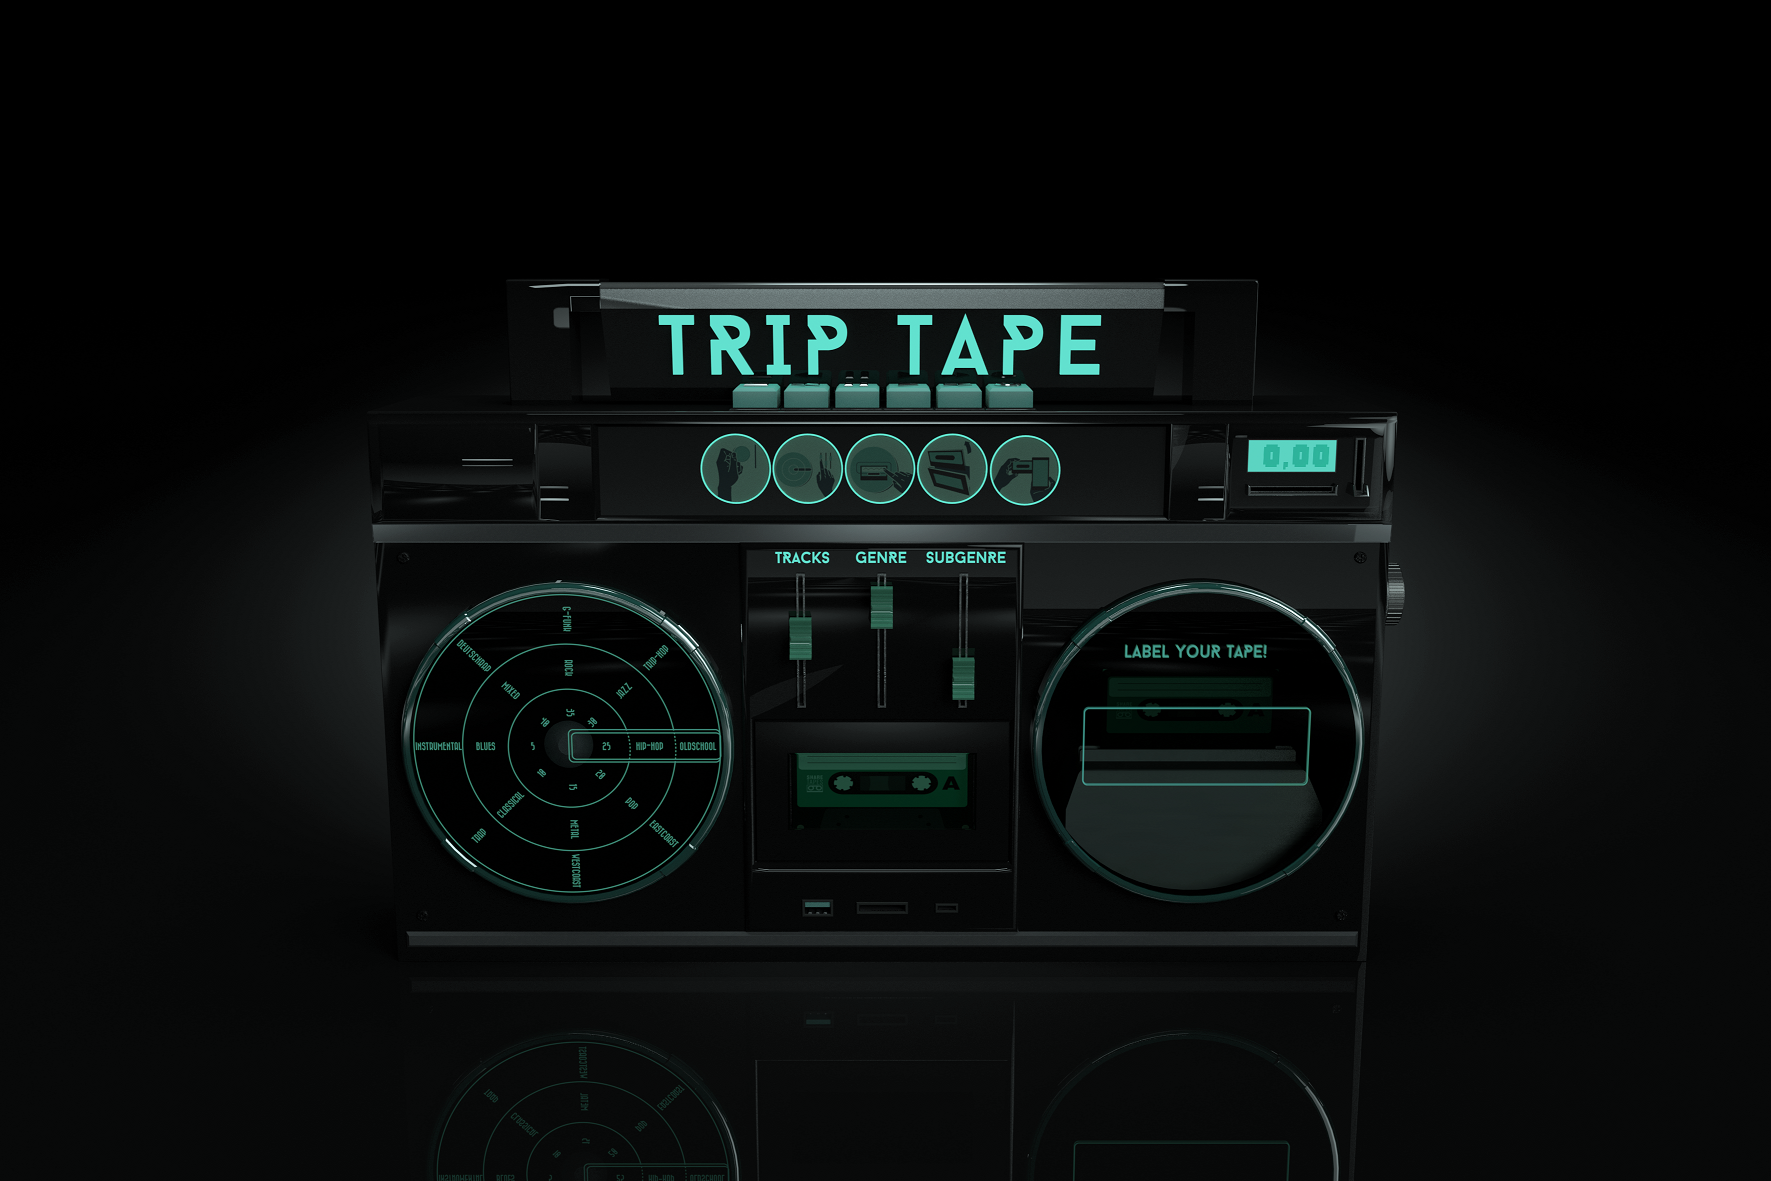 Fictive machine concept - the TRIP TAPE / Mixtape machine